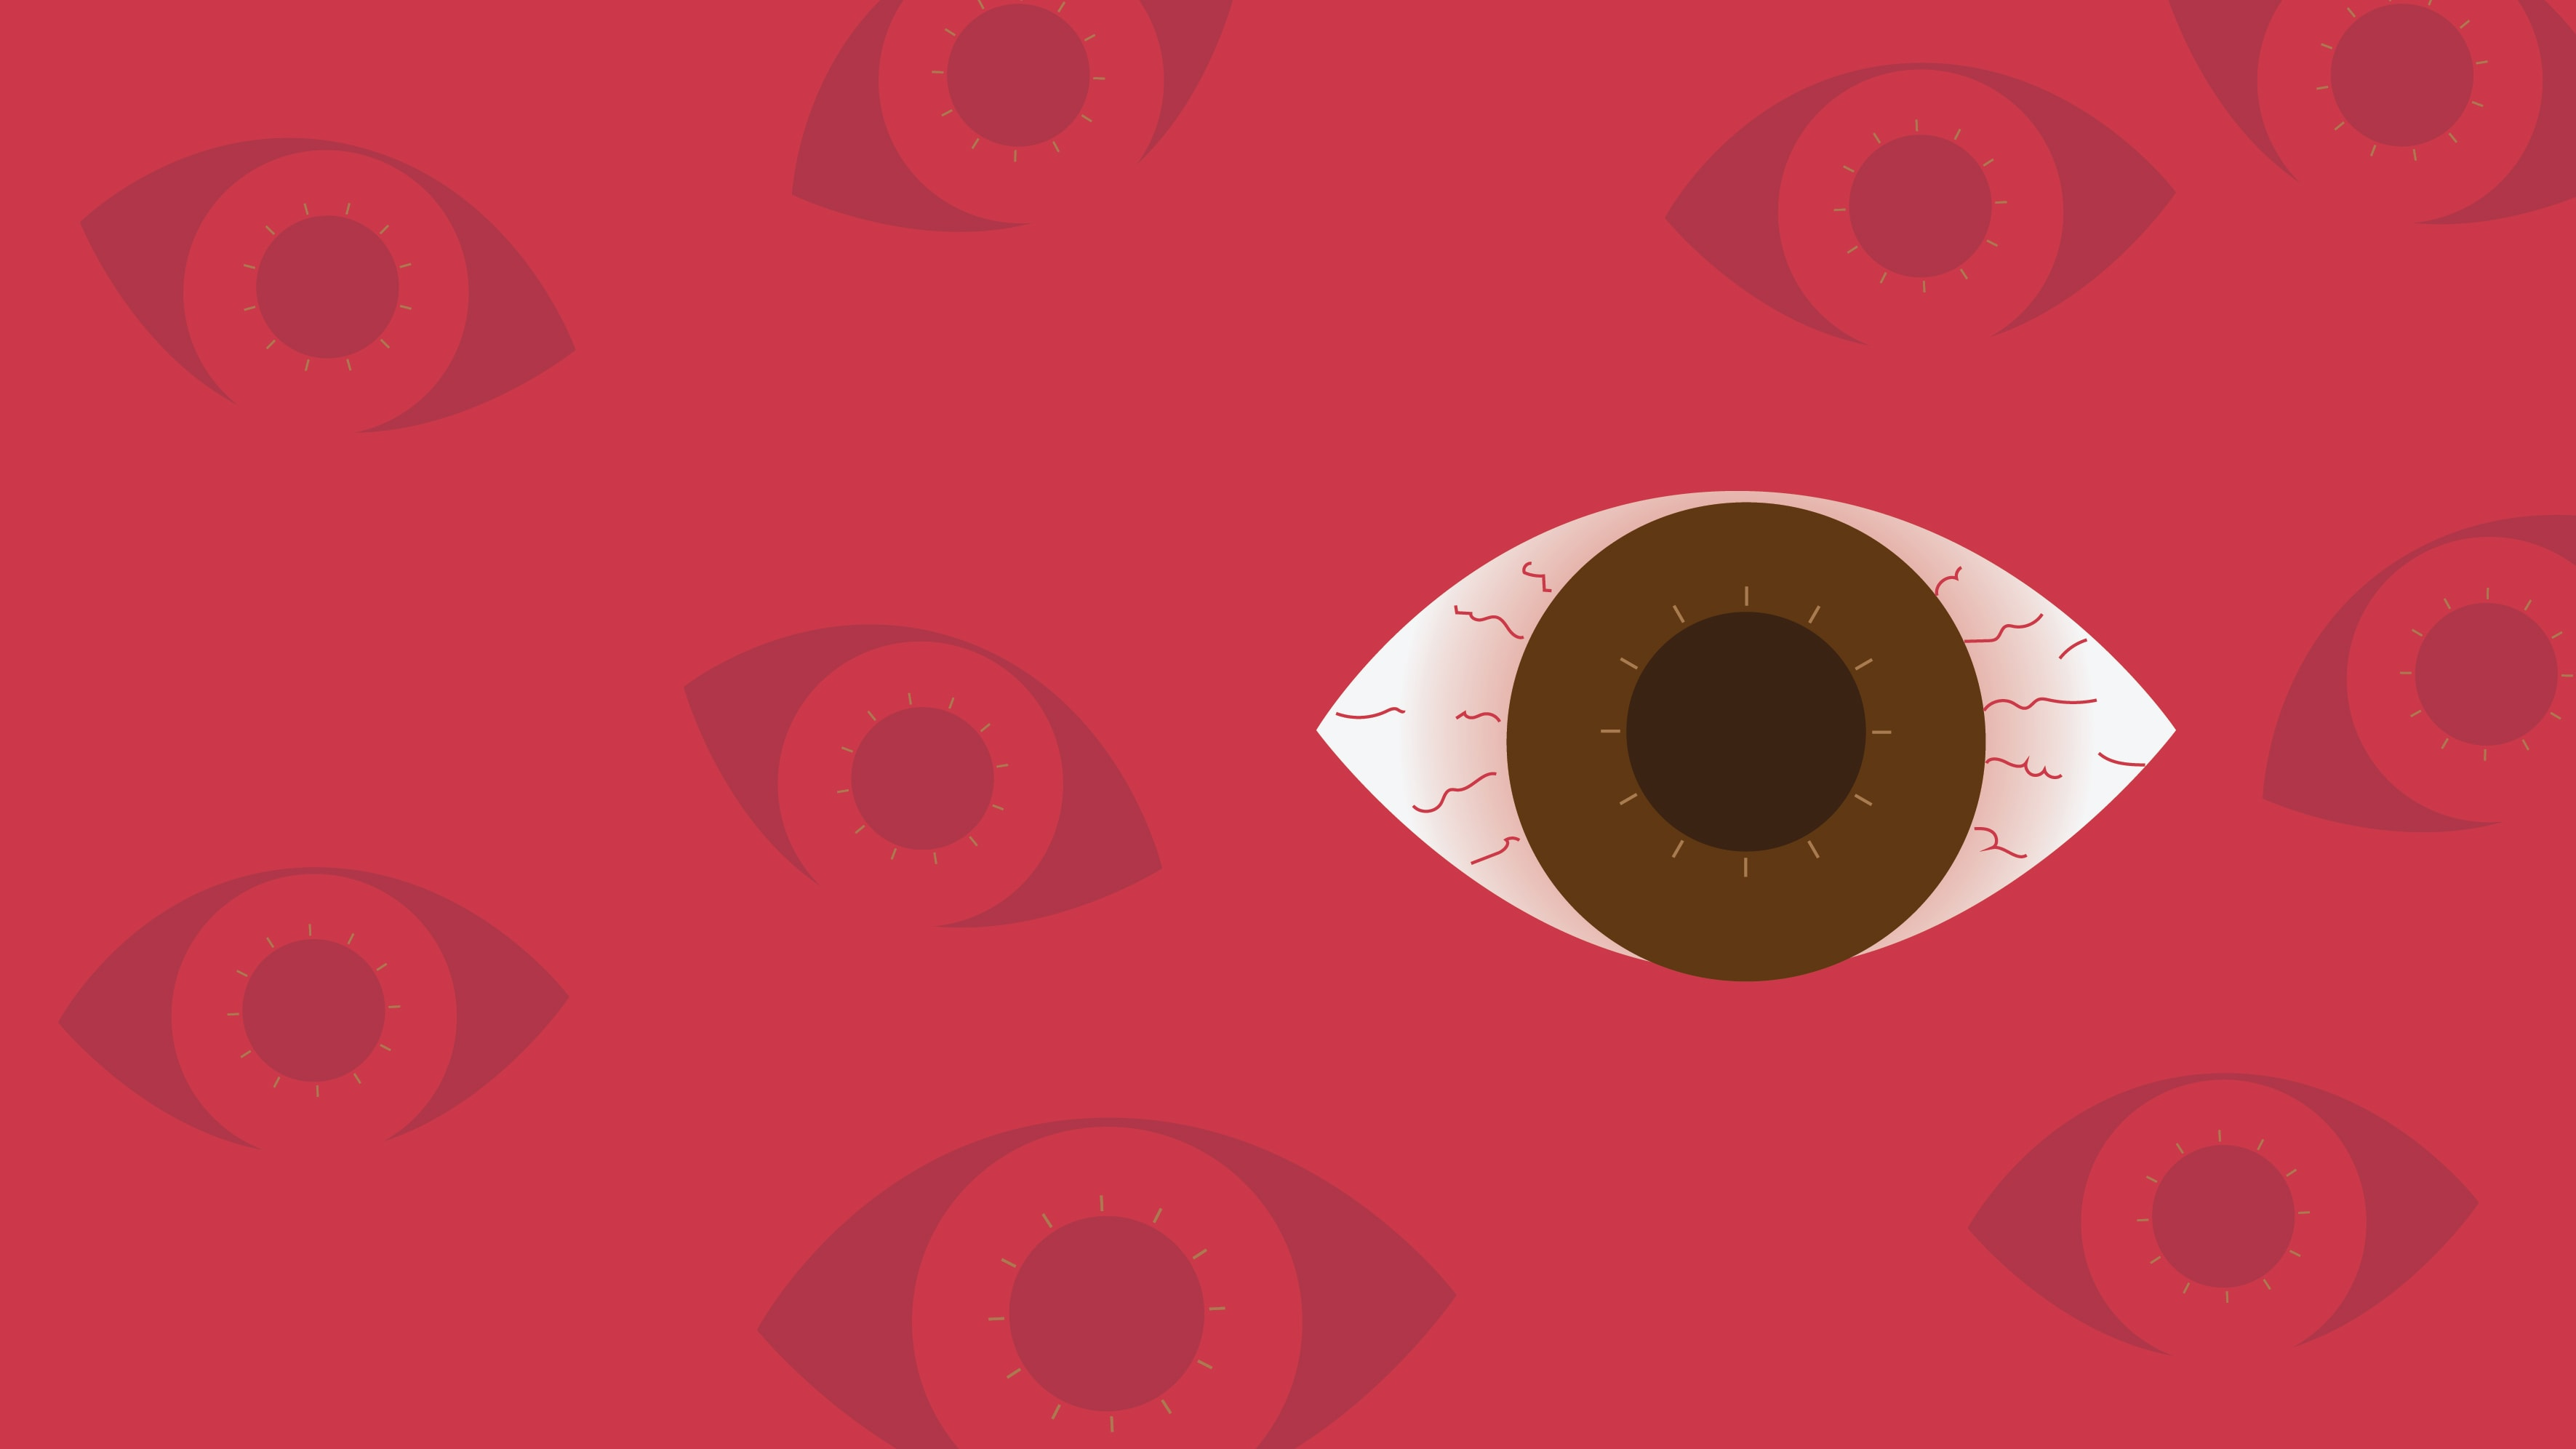 Emergency Eye Care: Study Shows 1 in 4 ER Visits for Eye Problems ...